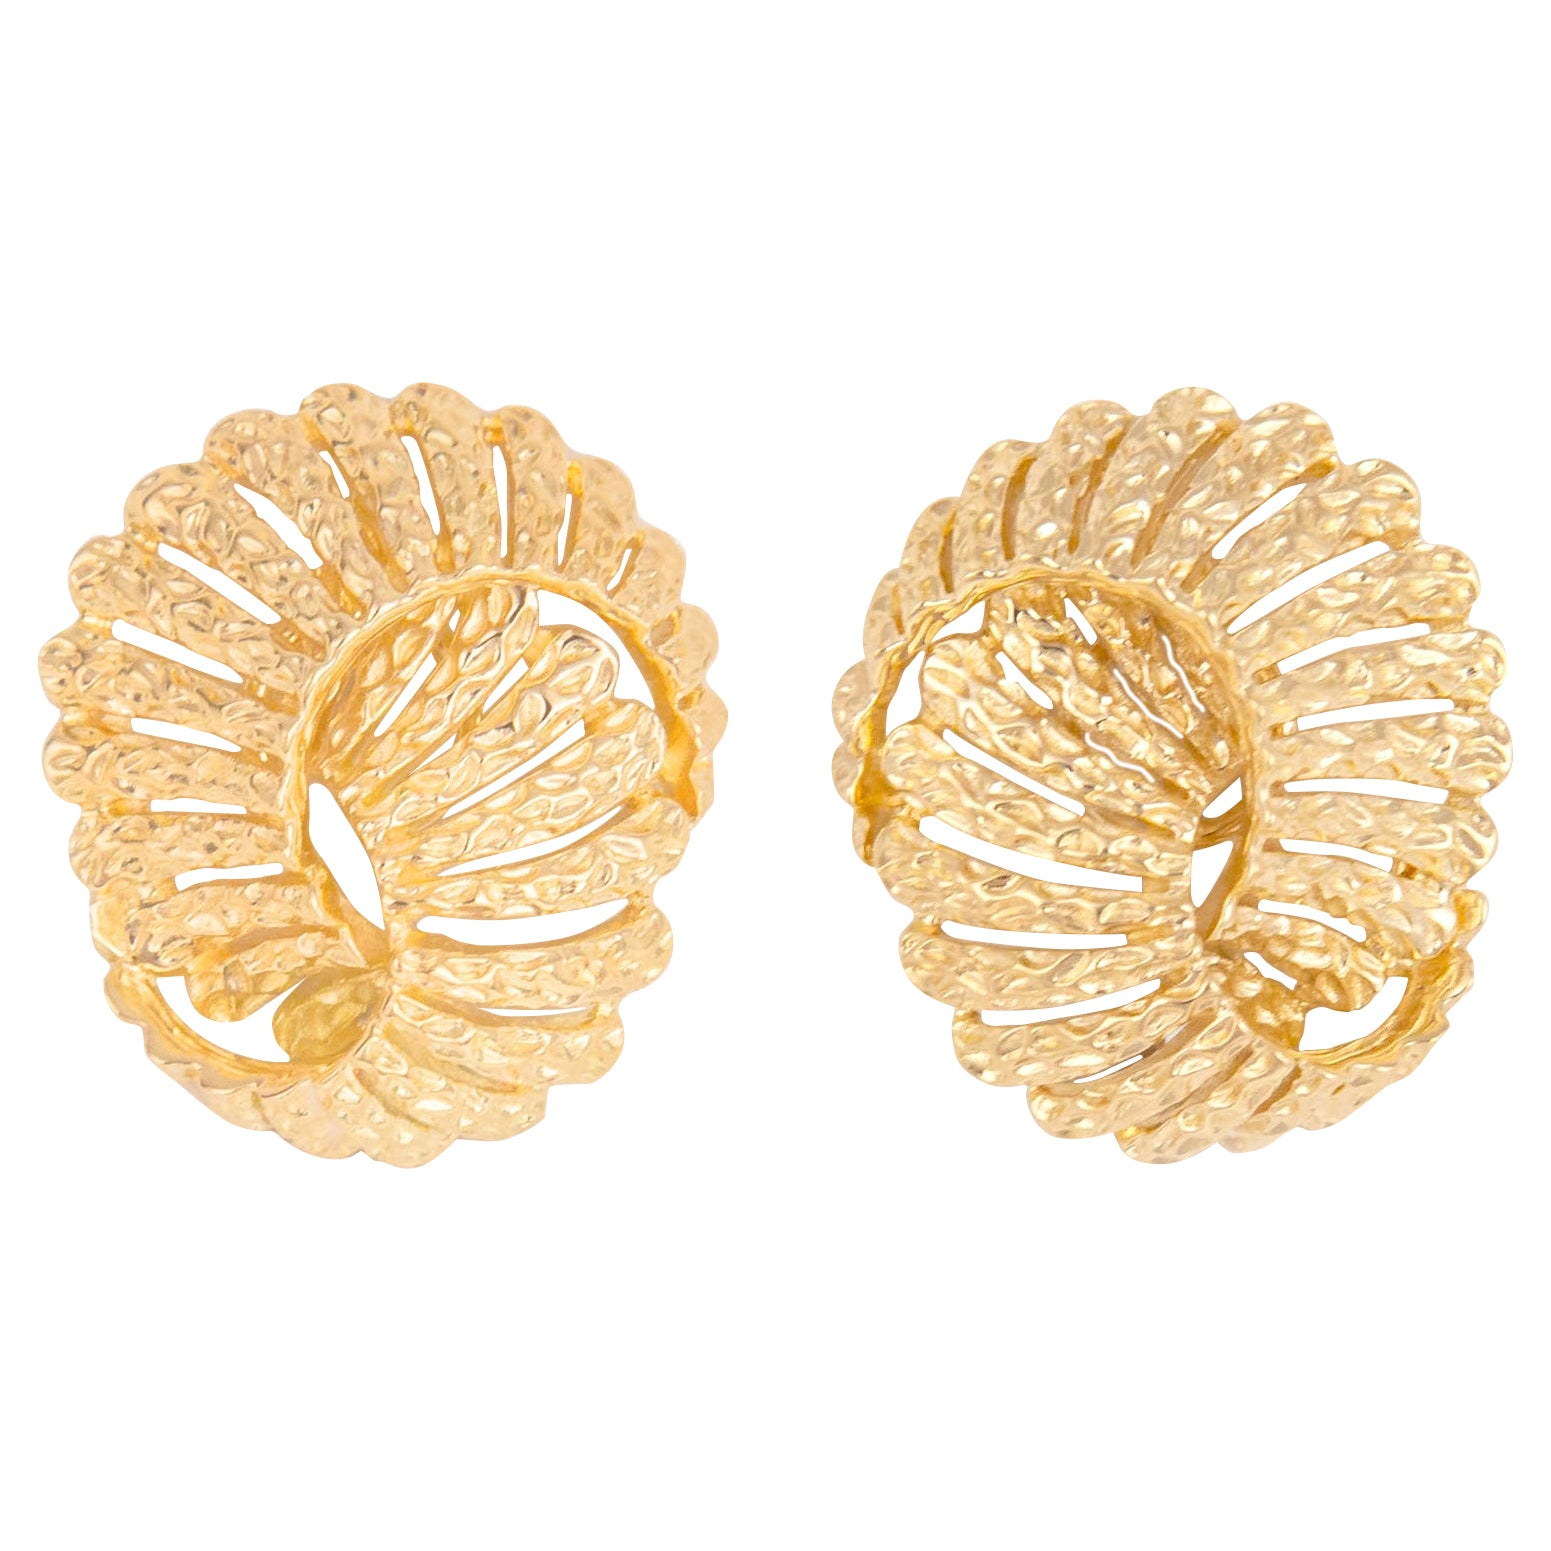 Vintage Tiffany & Co. Textured Gold Earrings